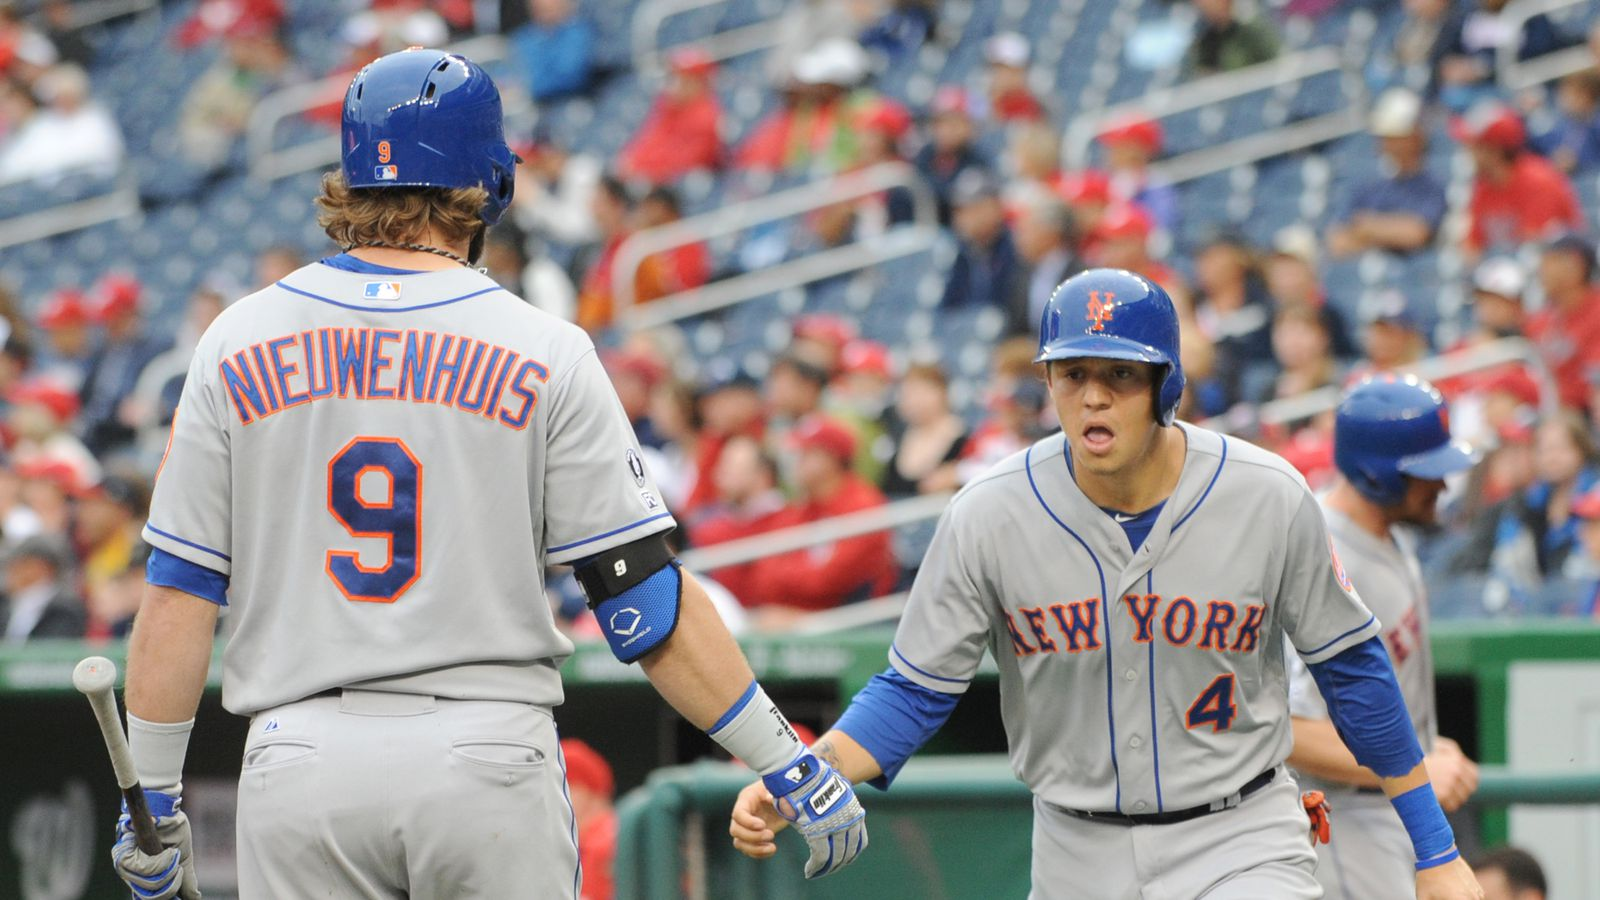 Mets tweak uniforms for 2015